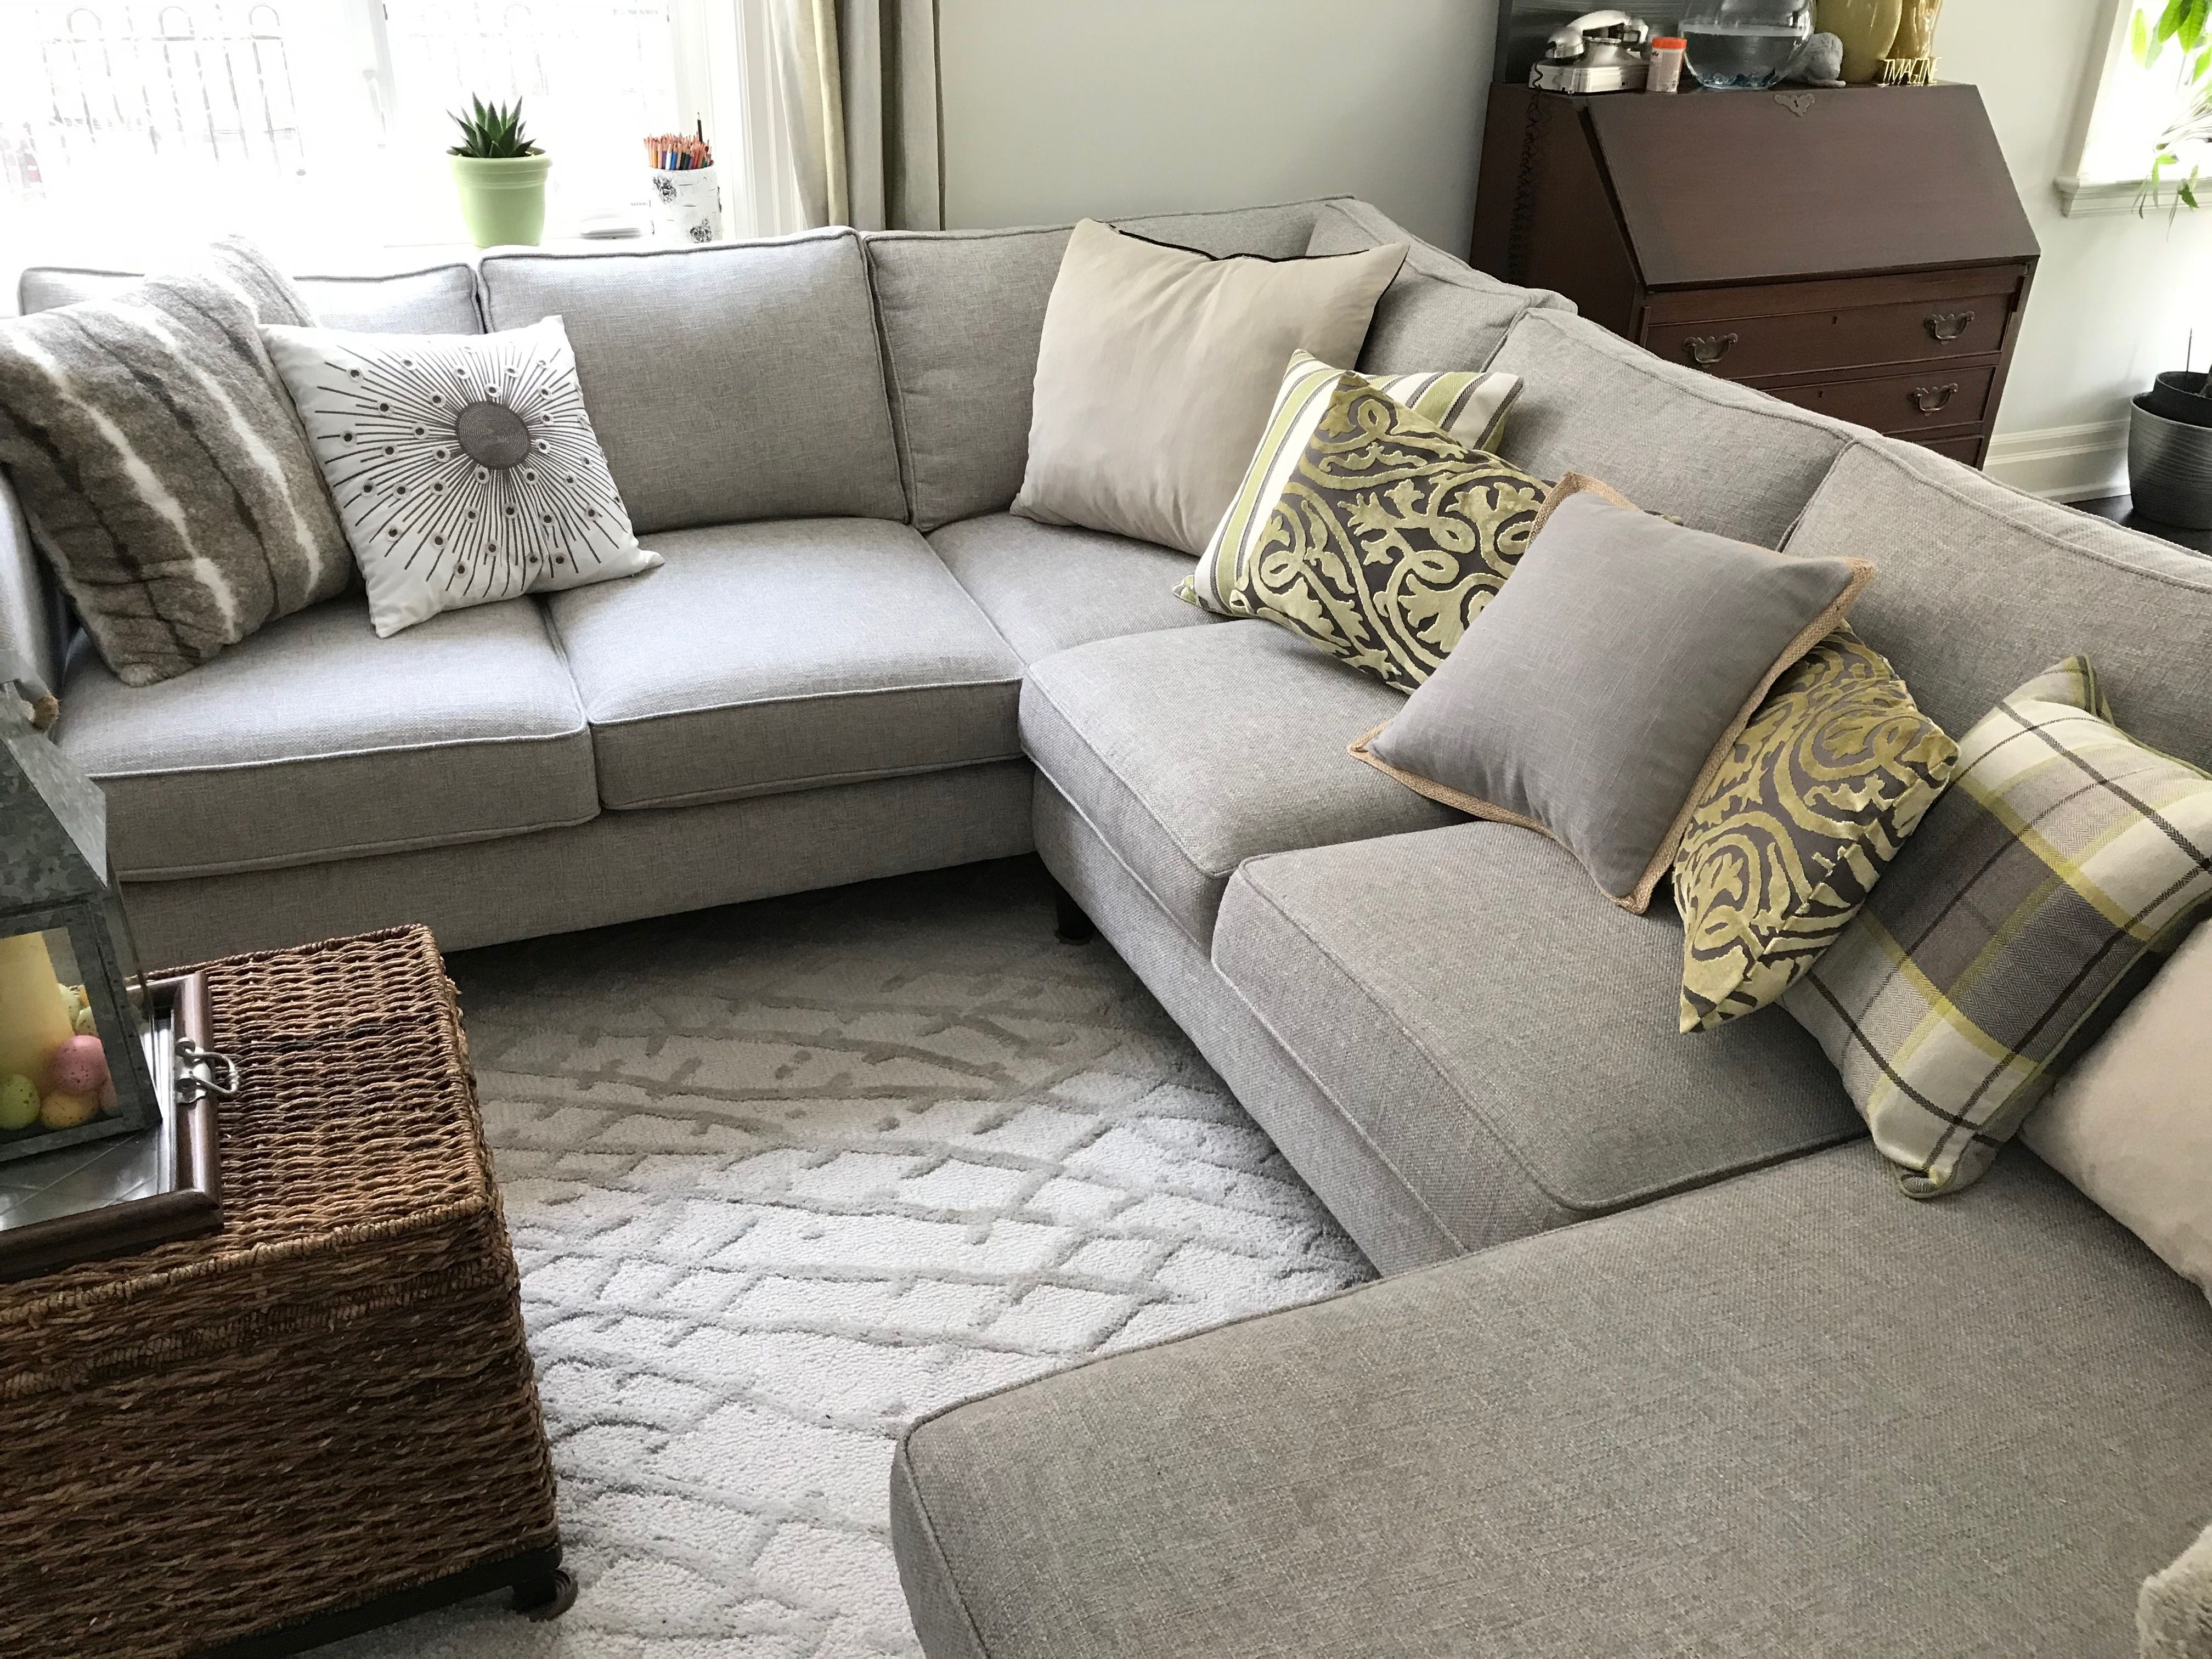 Grey Sectional Sofa With Light Green Accents In Family Room Furniture Design Living Room Gray Sectional Living Room Family Living Rooms